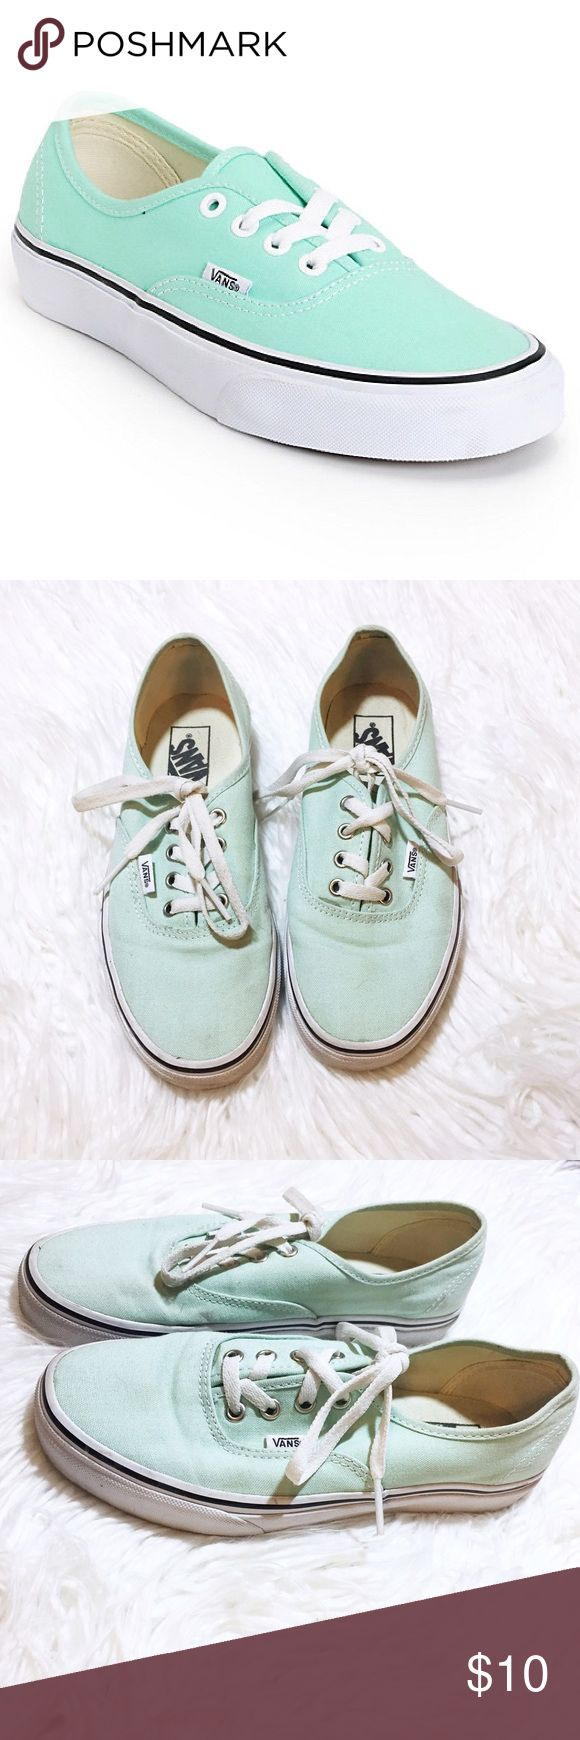 Teal vans 🐬 Teal vans Worn a bit could use a wash on the outside but not too bad Size: 7.5 Original price: $40 Vans Shoes Sneakers